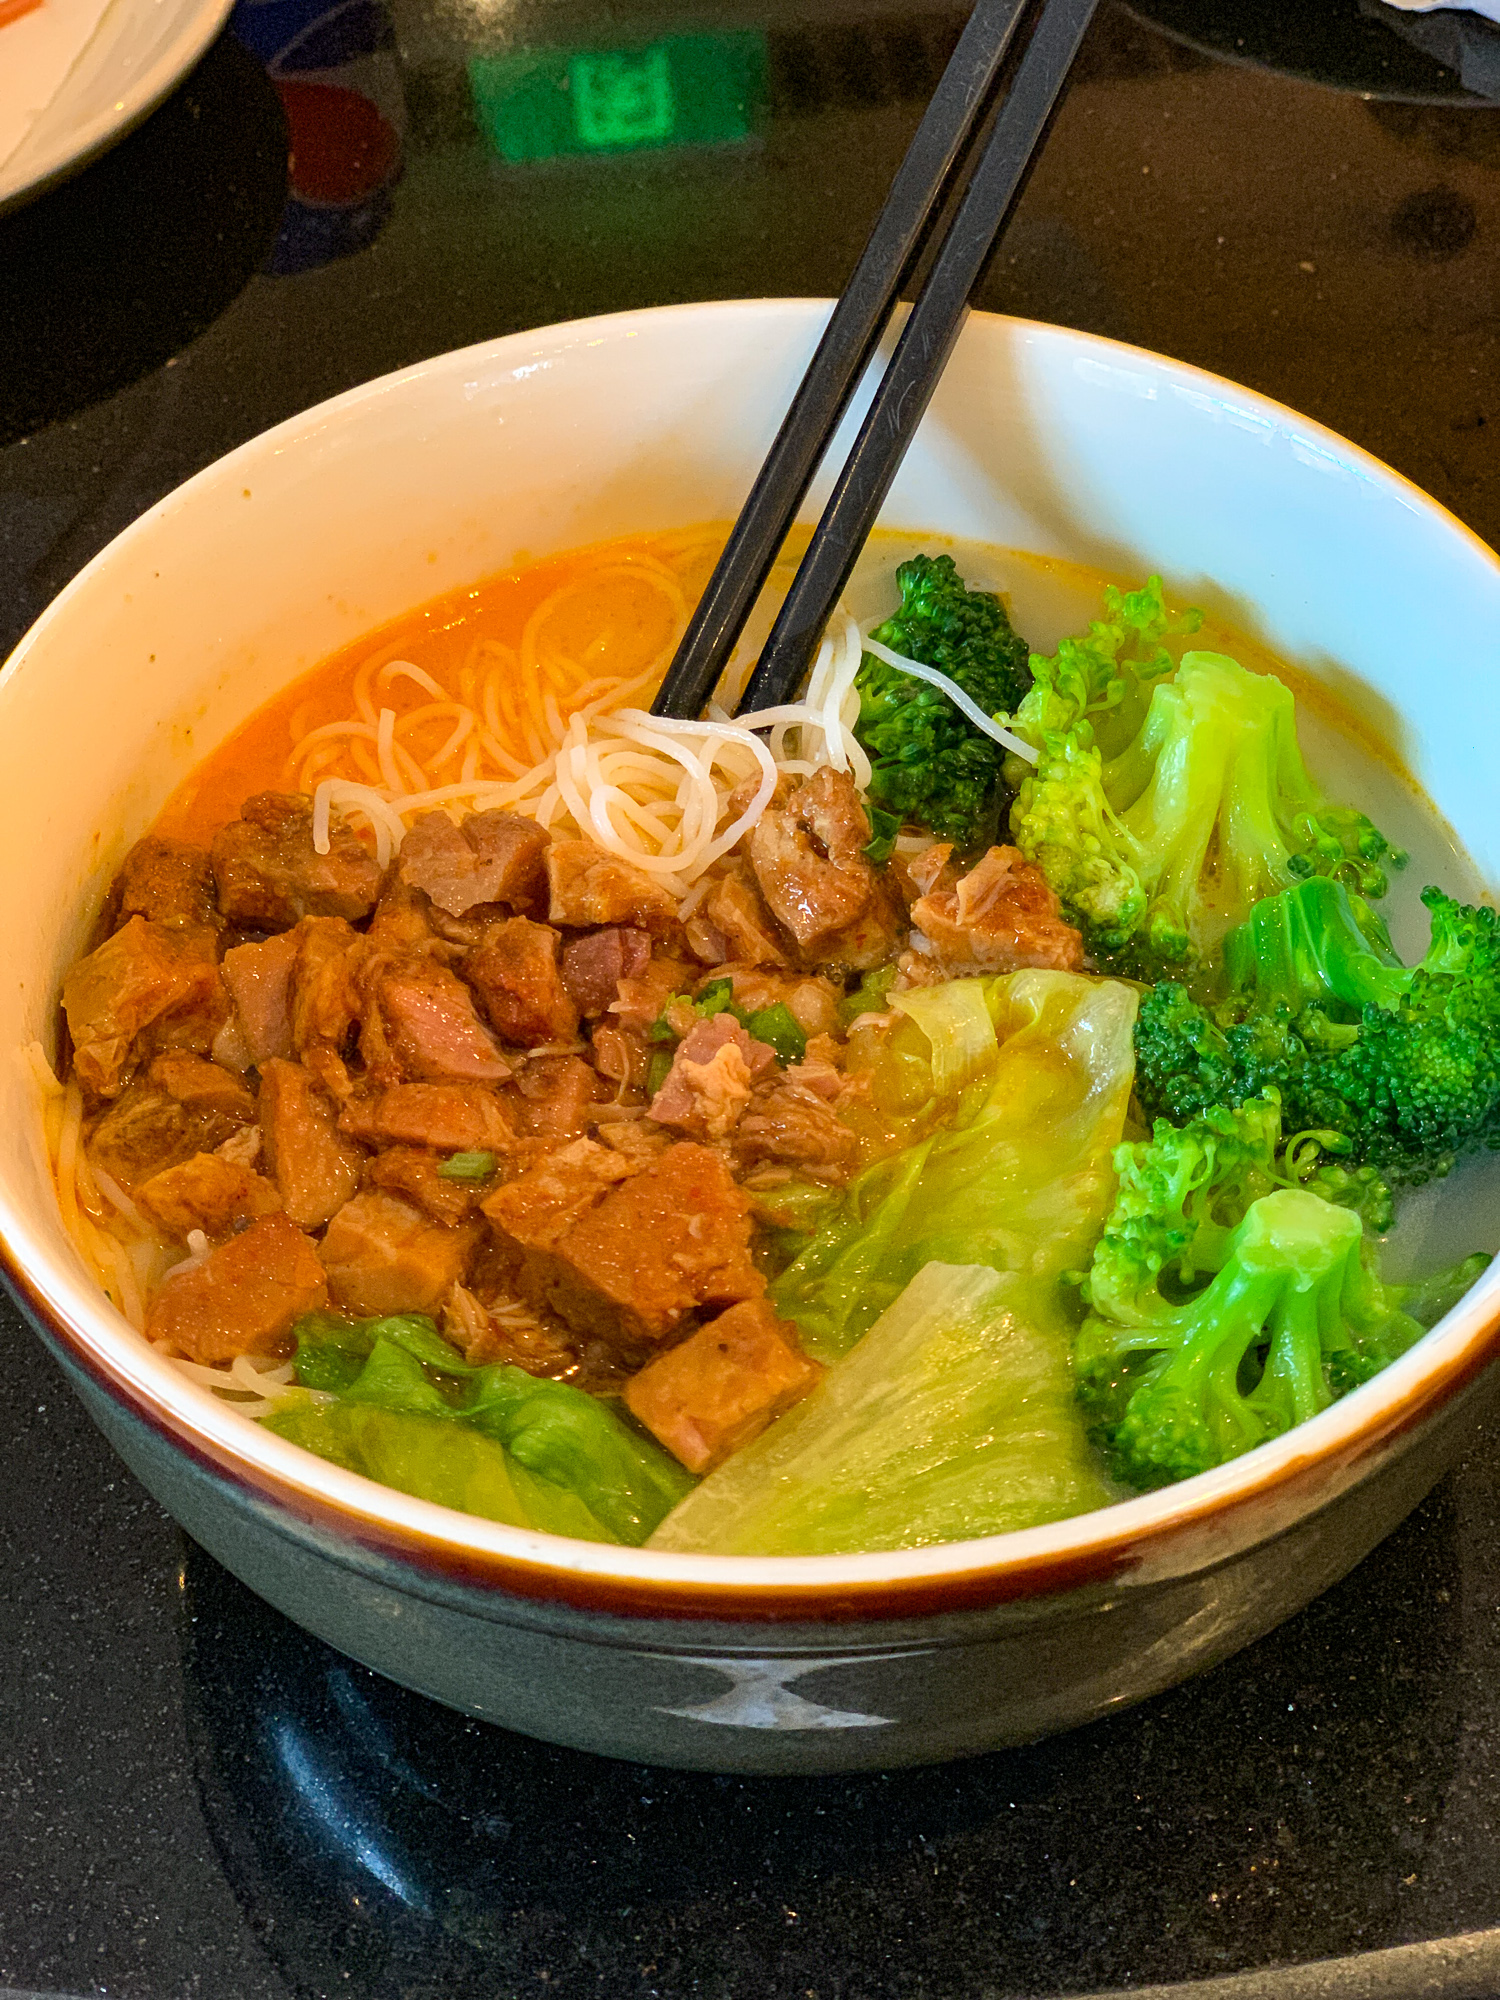 Breakfast soup with spicy pork, rice noodles, broccoli and bok choi from the Dining Room restaurant in Disneytown